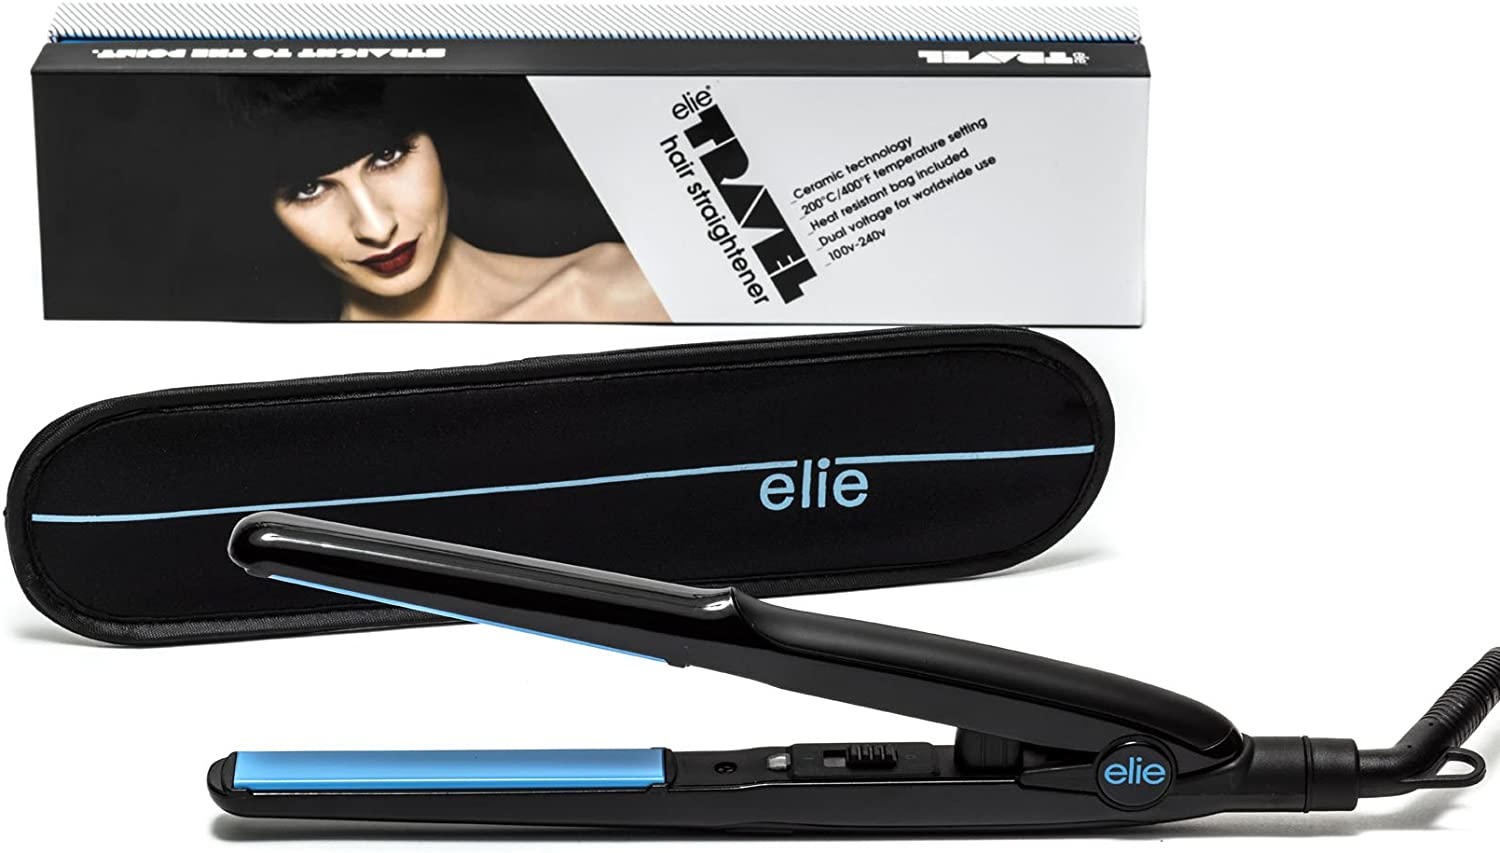 Elie HS 039 Straightener Dual Voltage for Worldwide 110v 240v (Travel)